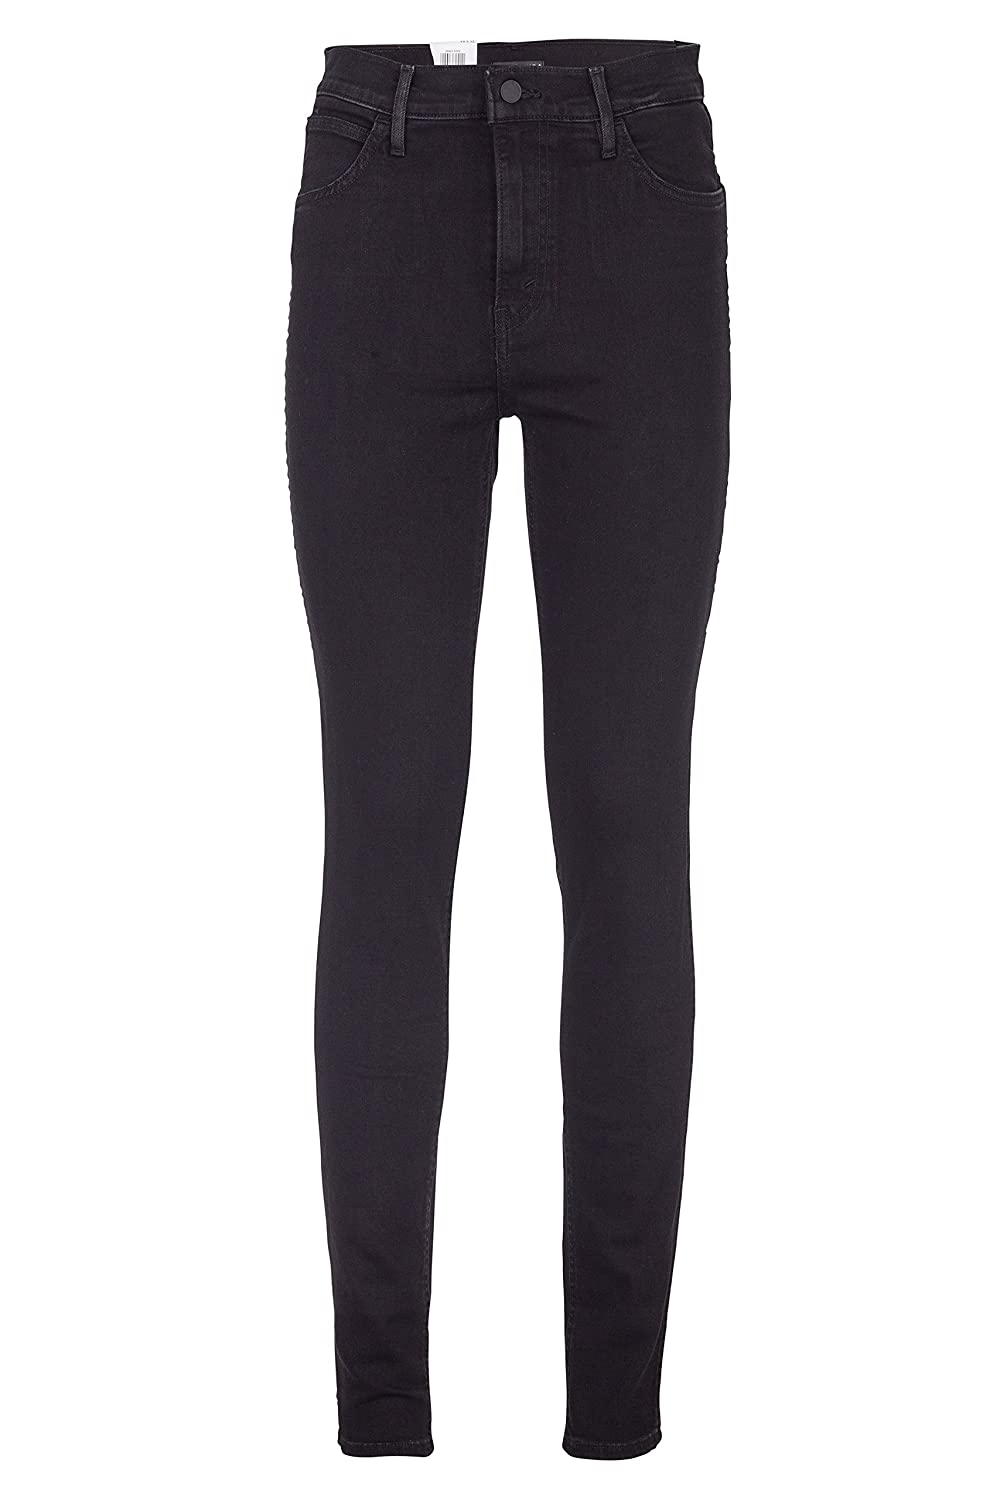 95b30037 Levi's® Women Jeans/High Waisted Jeans L8: Amazon.co.uk: Clothing